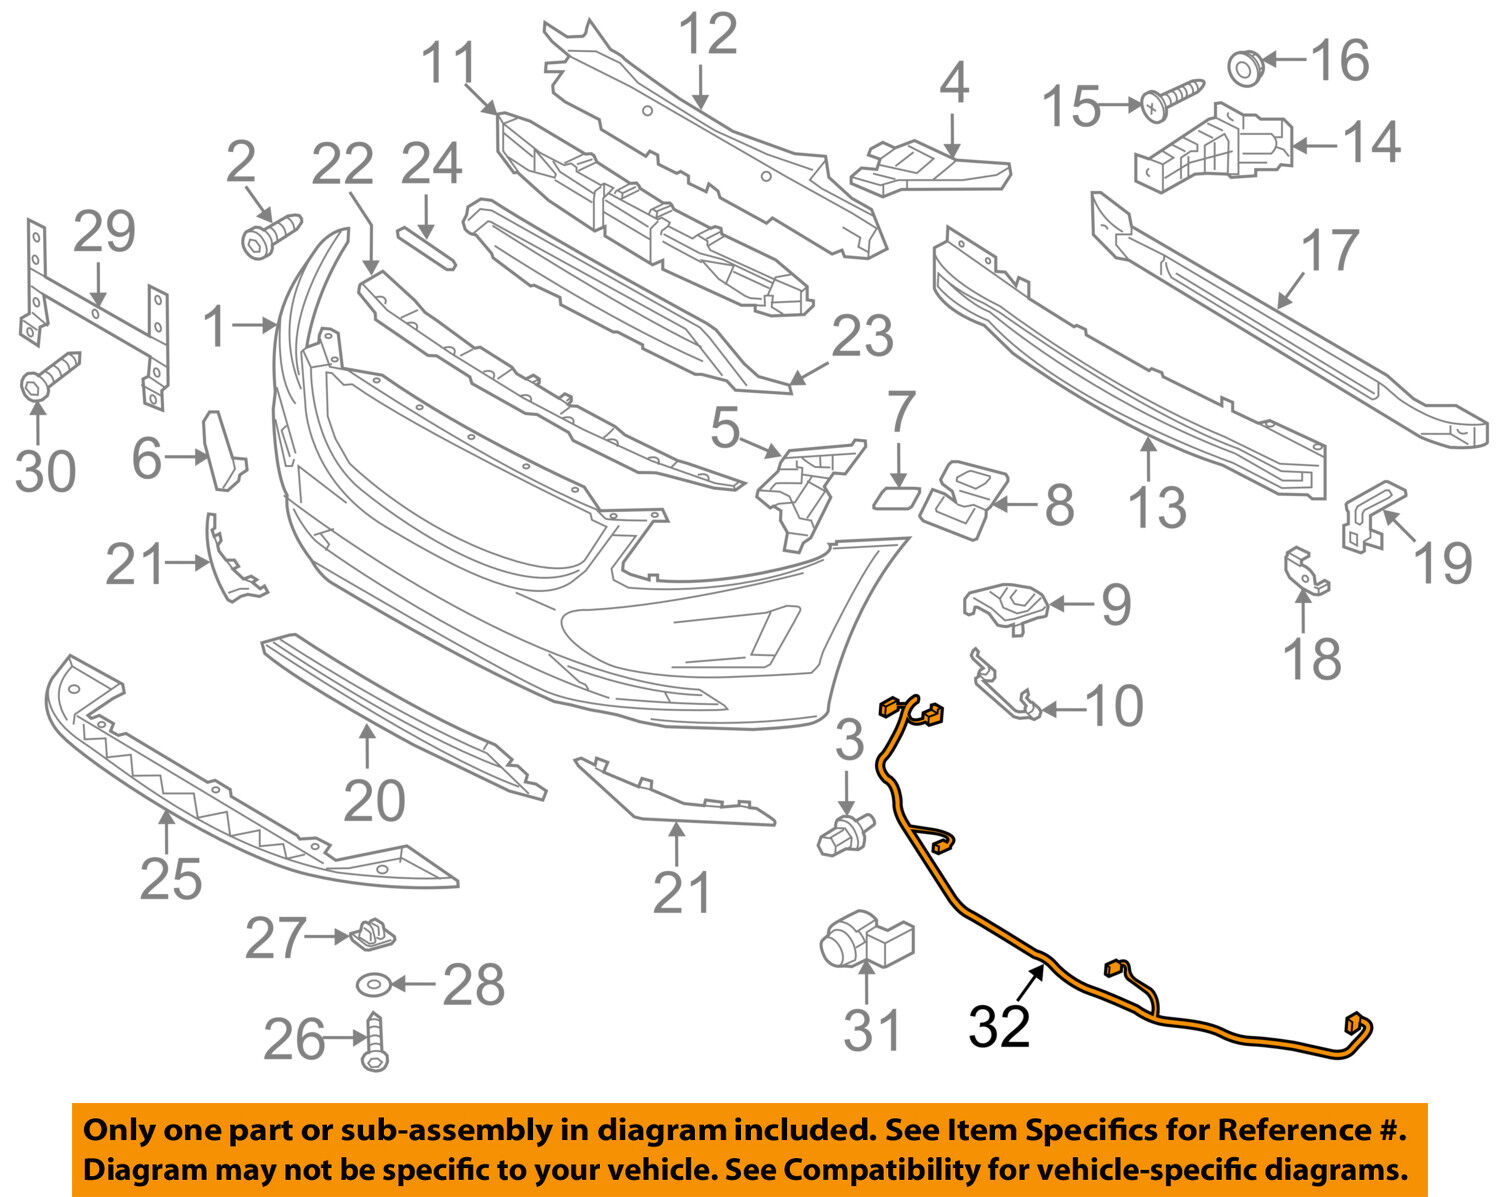 Volvo Oem 10 12 Xc60 Front Bumper Grille Wire Harness 30773680 Ebay 83 Wiring Norton Secured Powered By Verisign